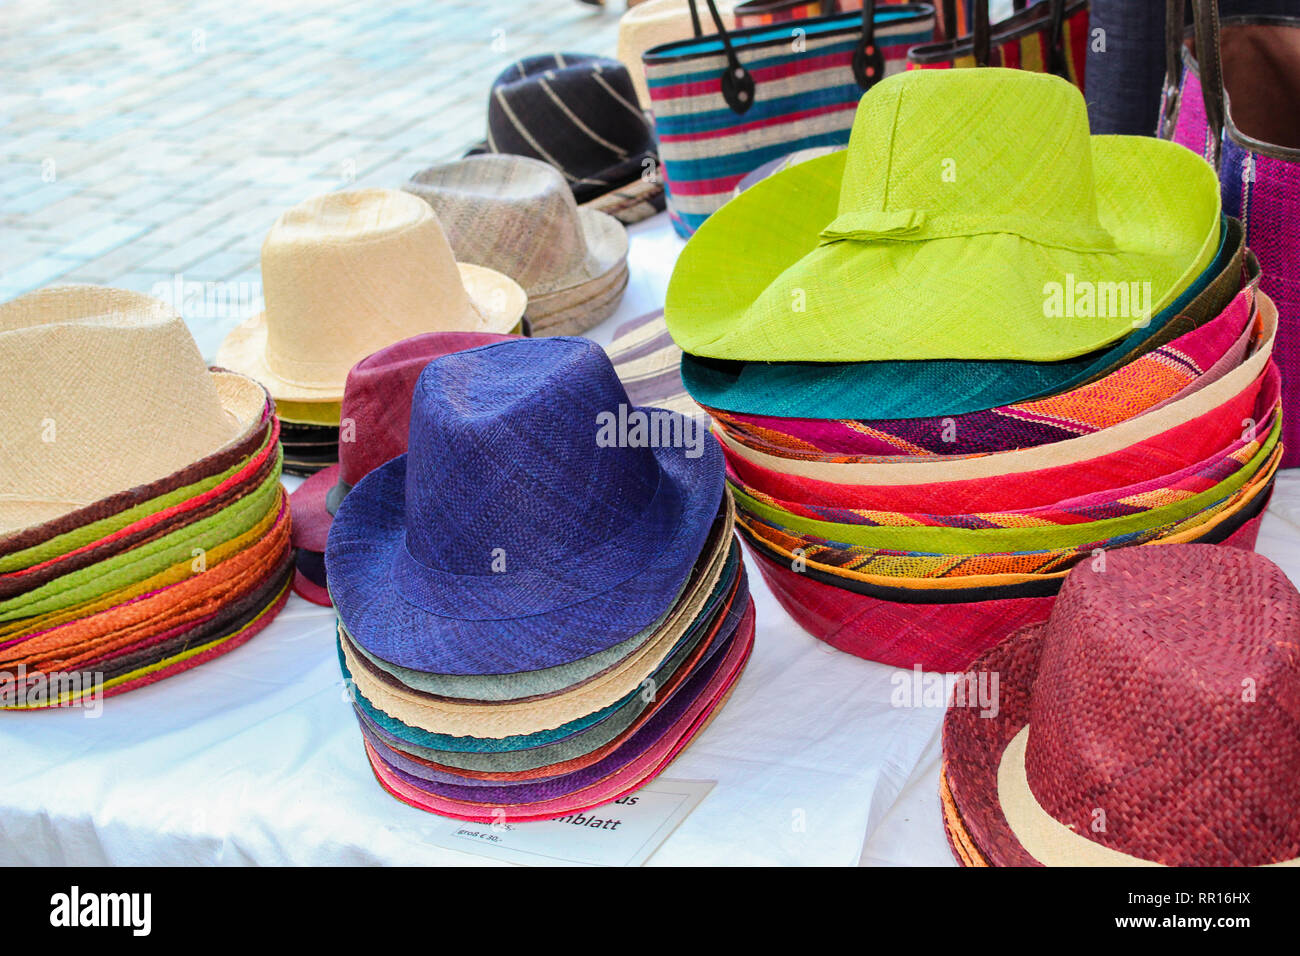 4c5437a13ba Colorful straw hats and bags at a Market for sale - Stock Image